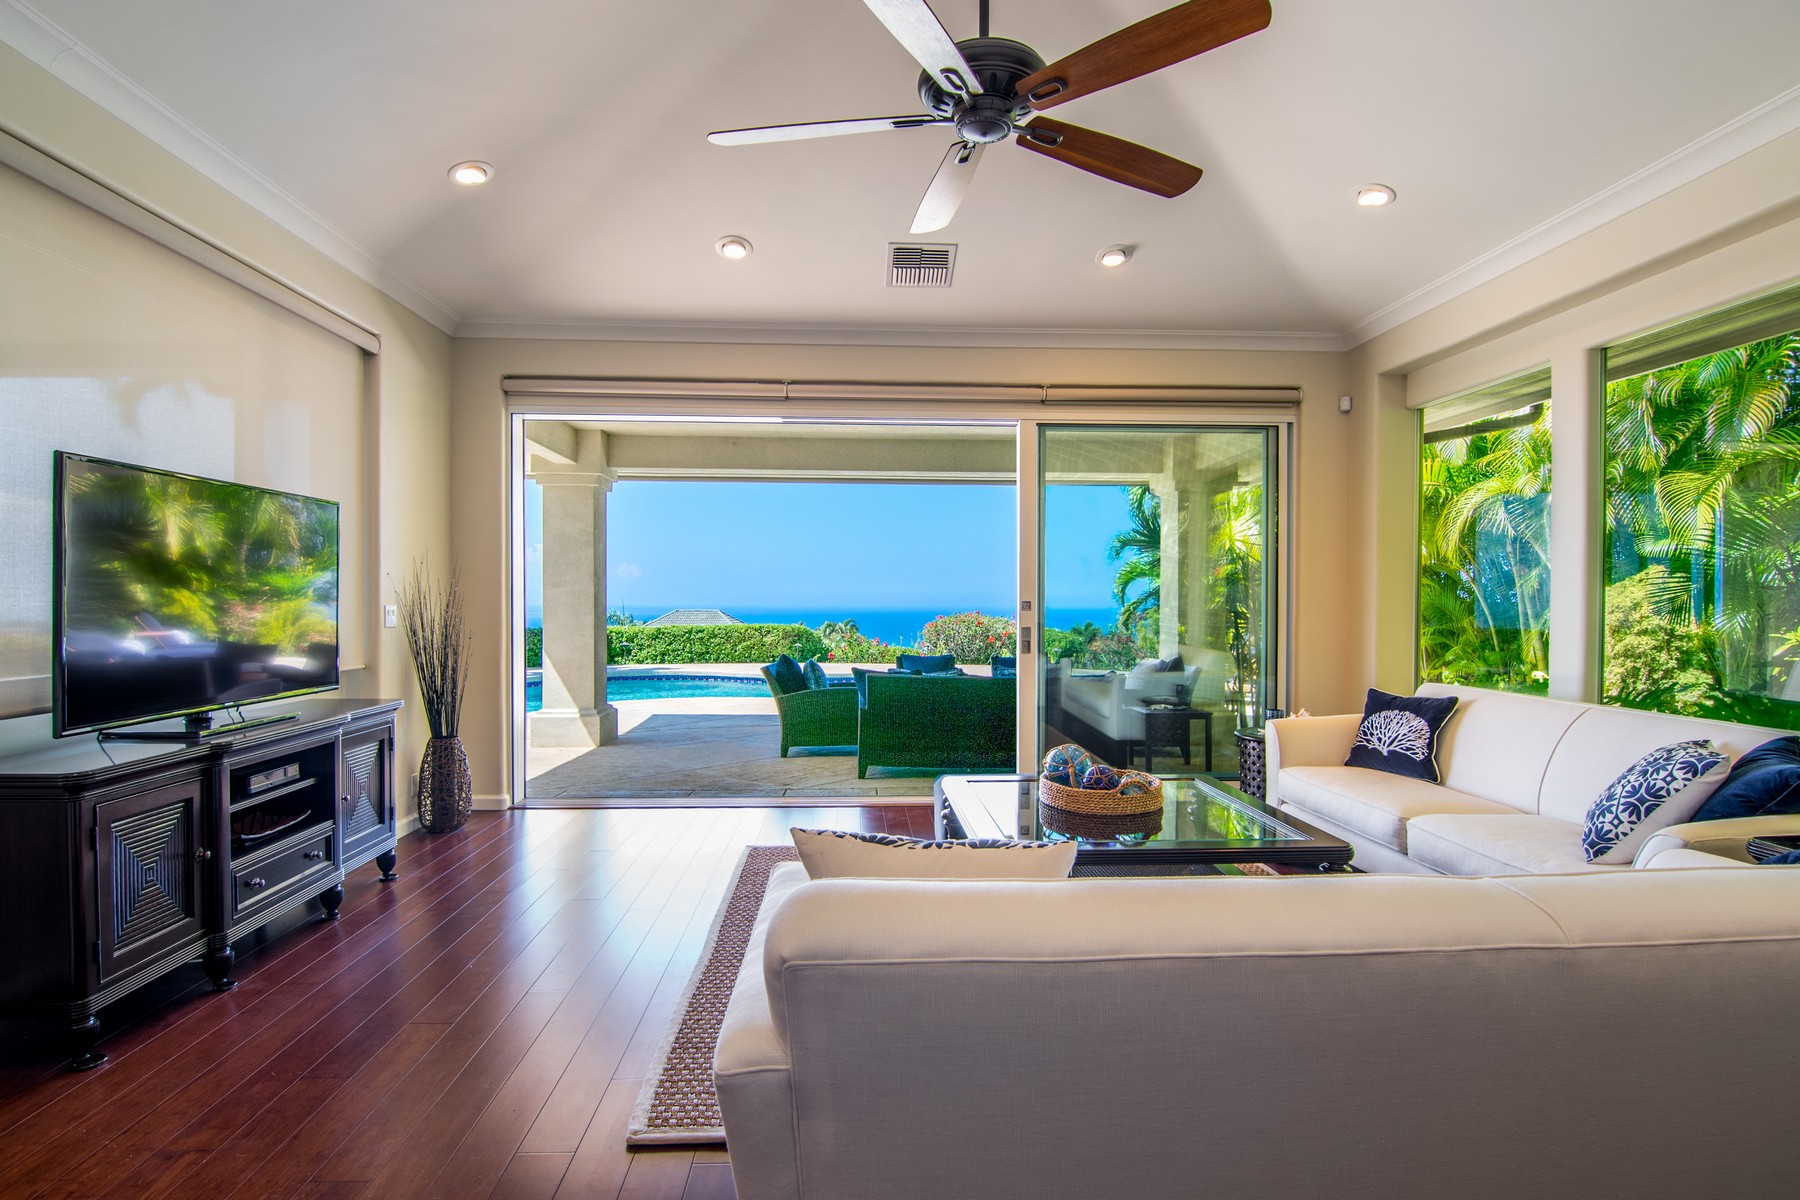 단독 가정 주택 용 매매 에 Imagine Dramatic Oceanviews in Kapalua, Maui 214 Crestview Road Kapalua, 하와이, 96761 미국